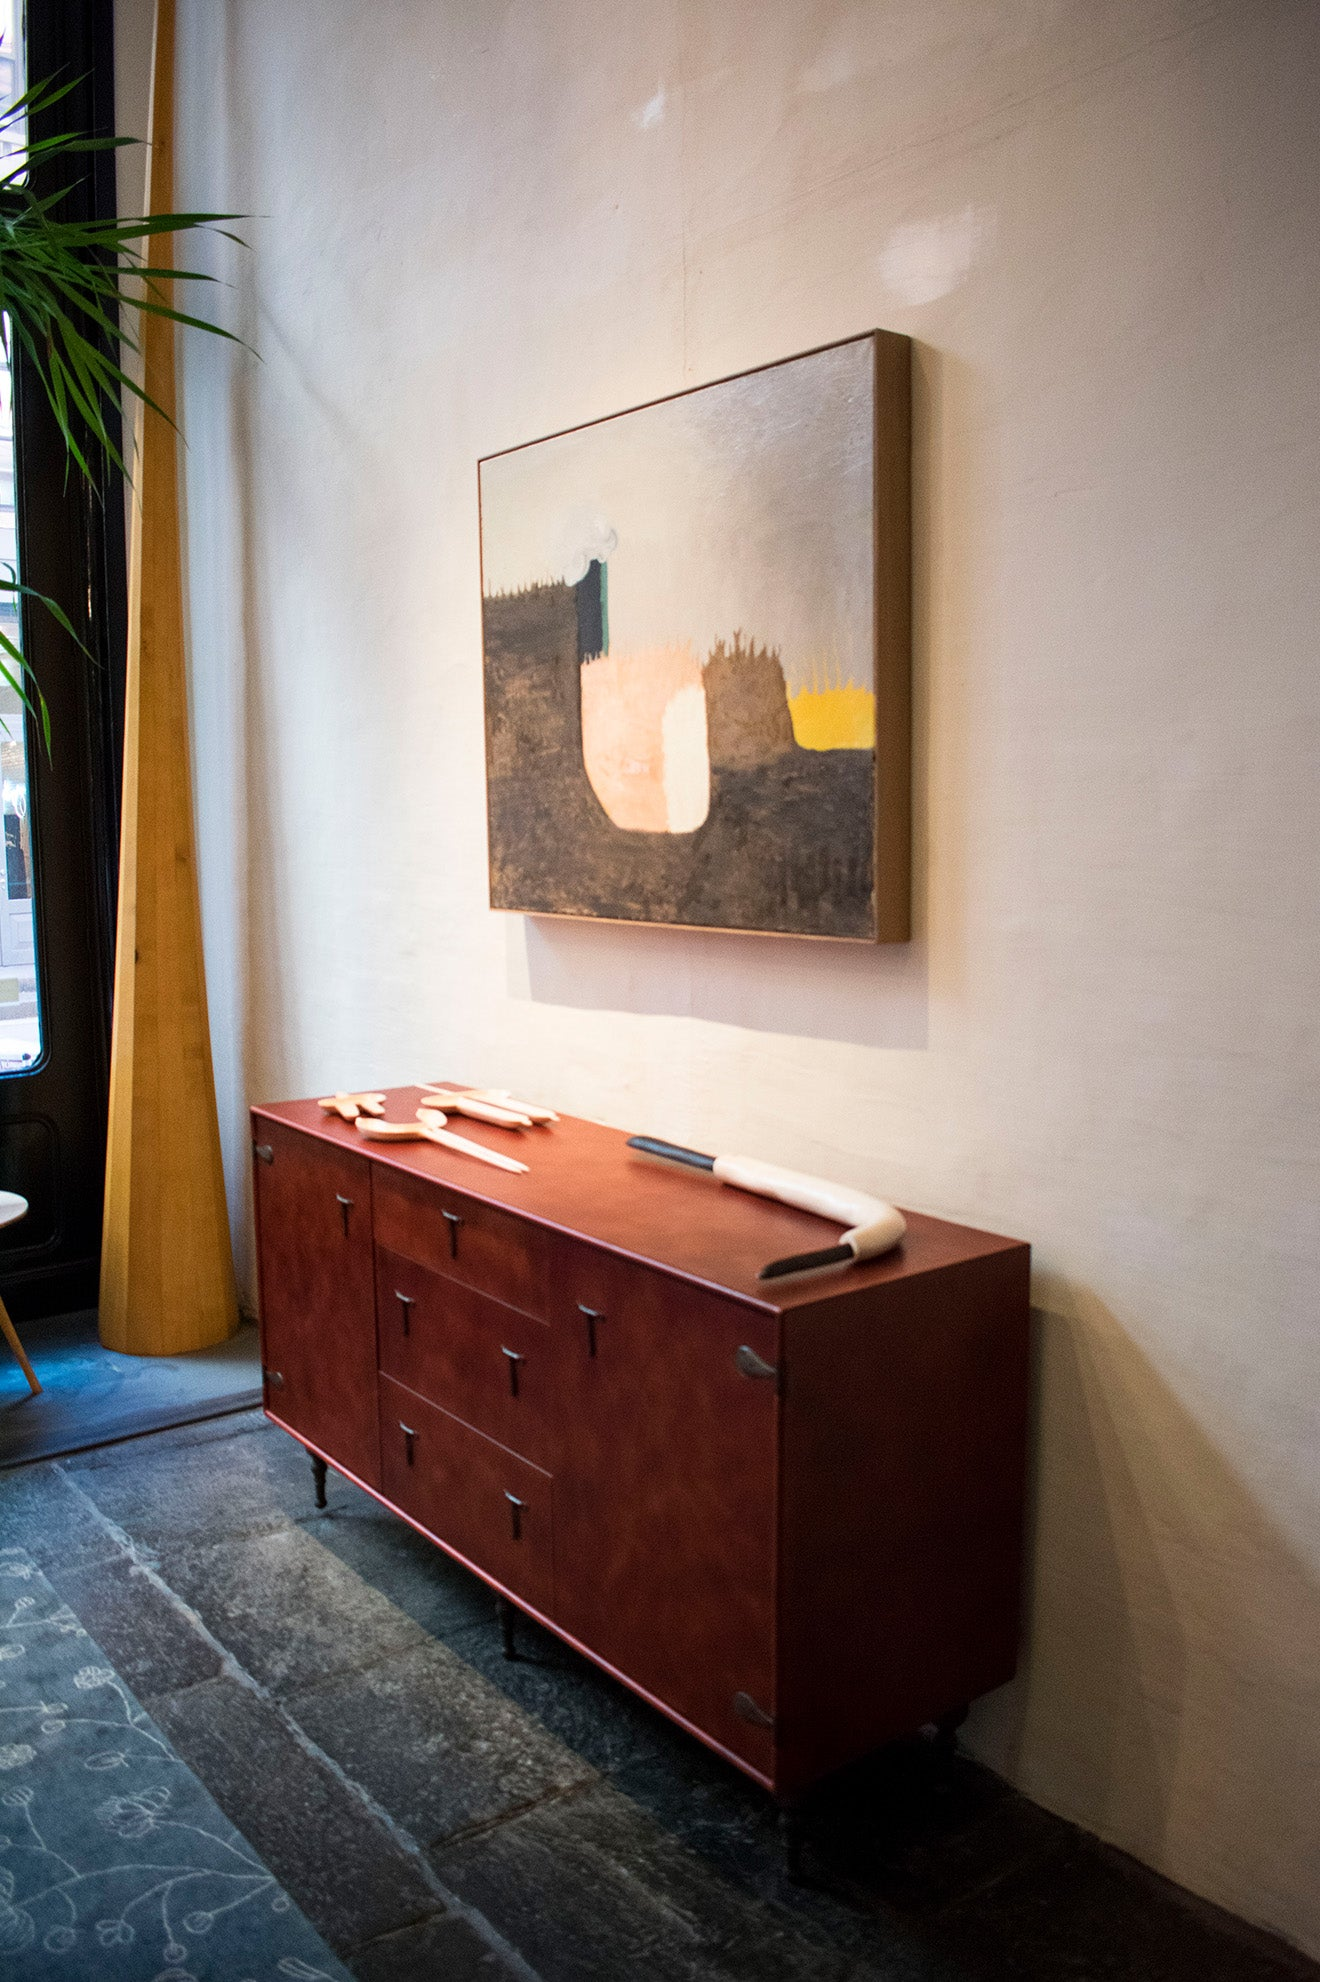 The BDDW Showroom New York Furniture Designs sideboard and artwork